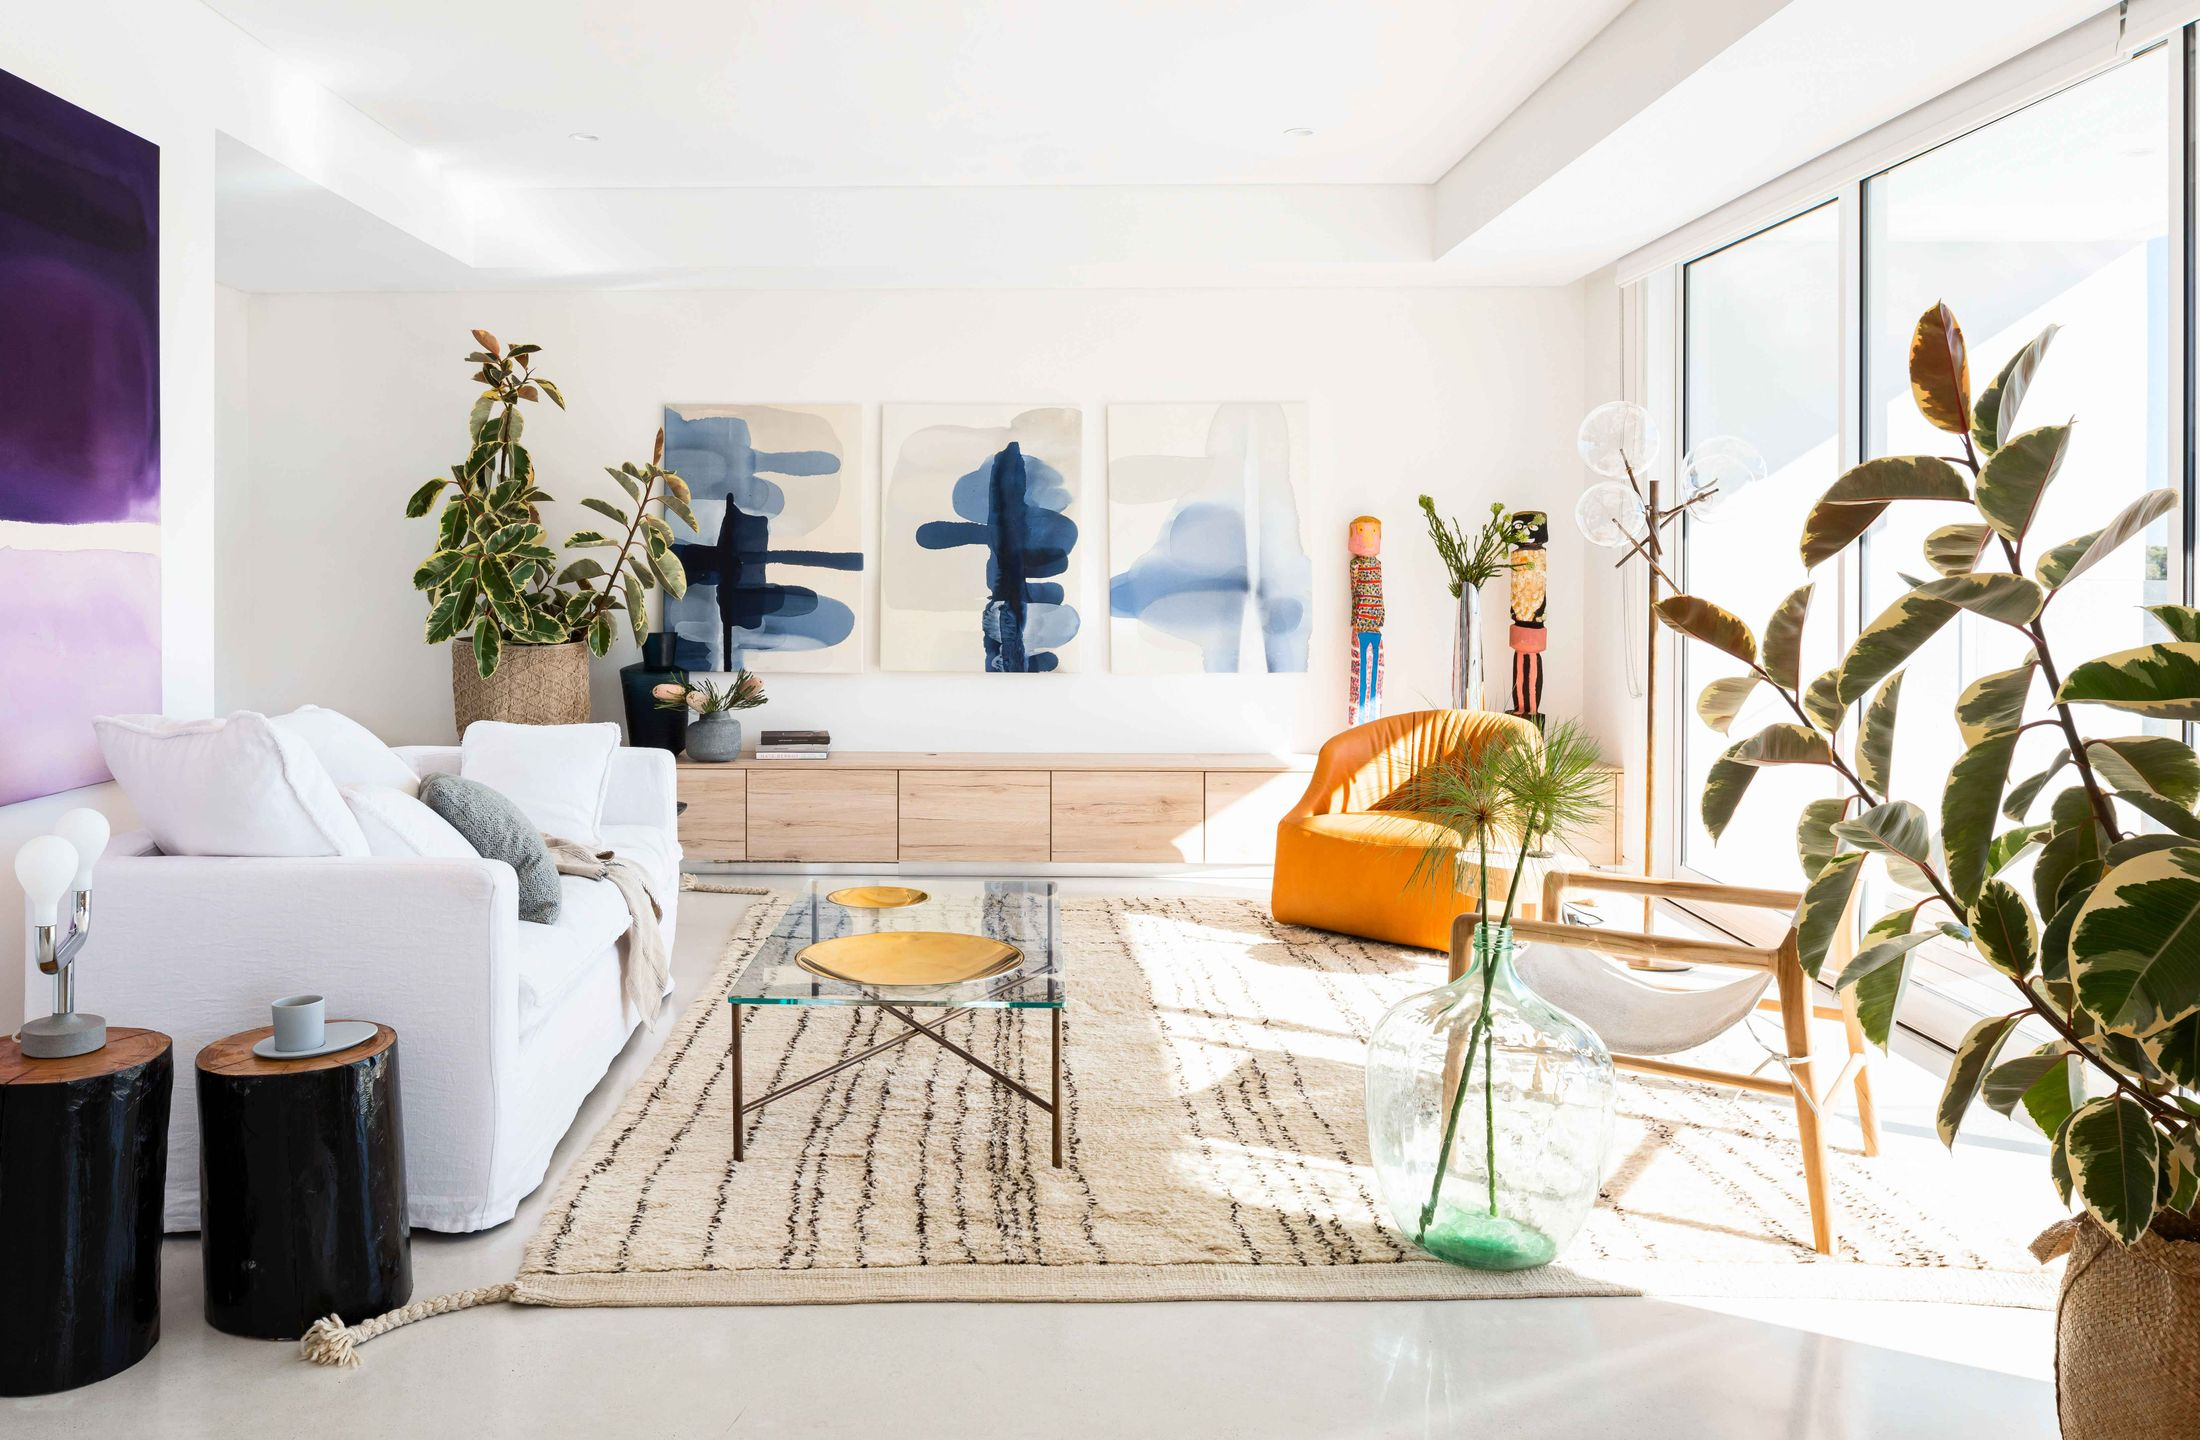 Top 8 home design trends for 2020 | Home Beautiful ...